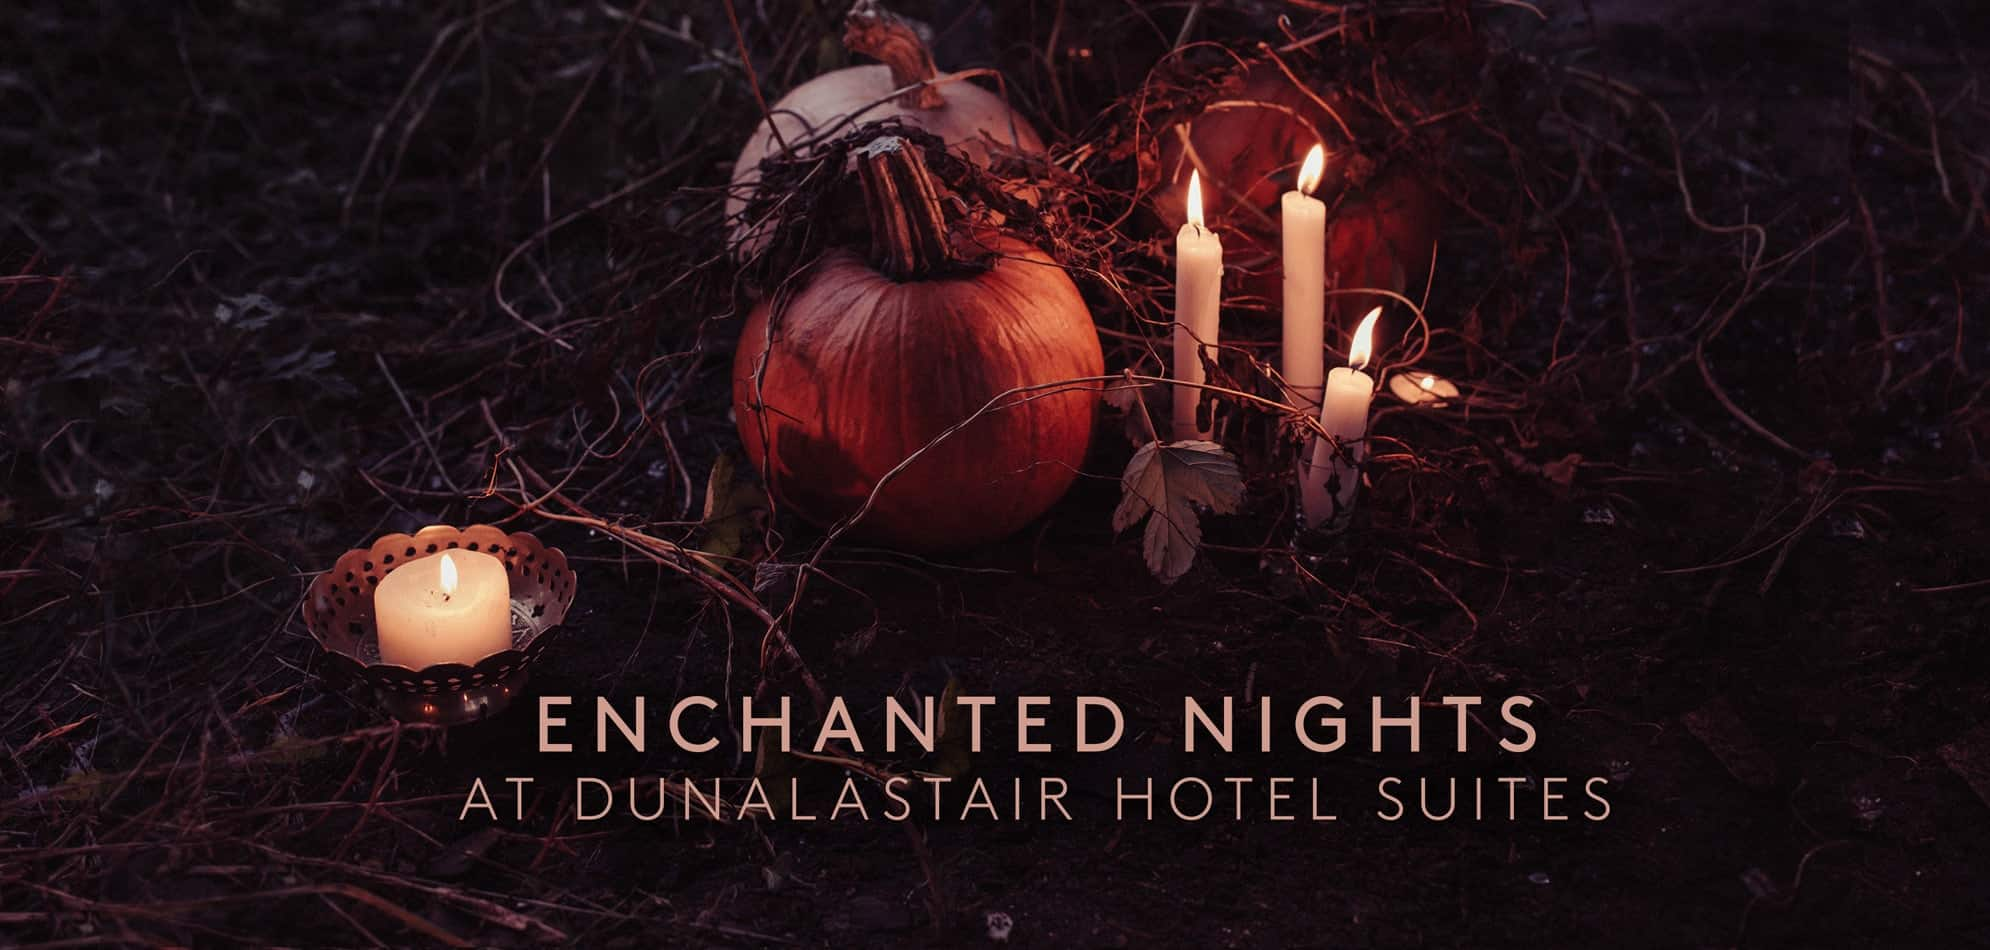 Scotland's Spookiest Stories: Our Luxury Scottish Hotel Team Share Their Favourite Halloween Tales